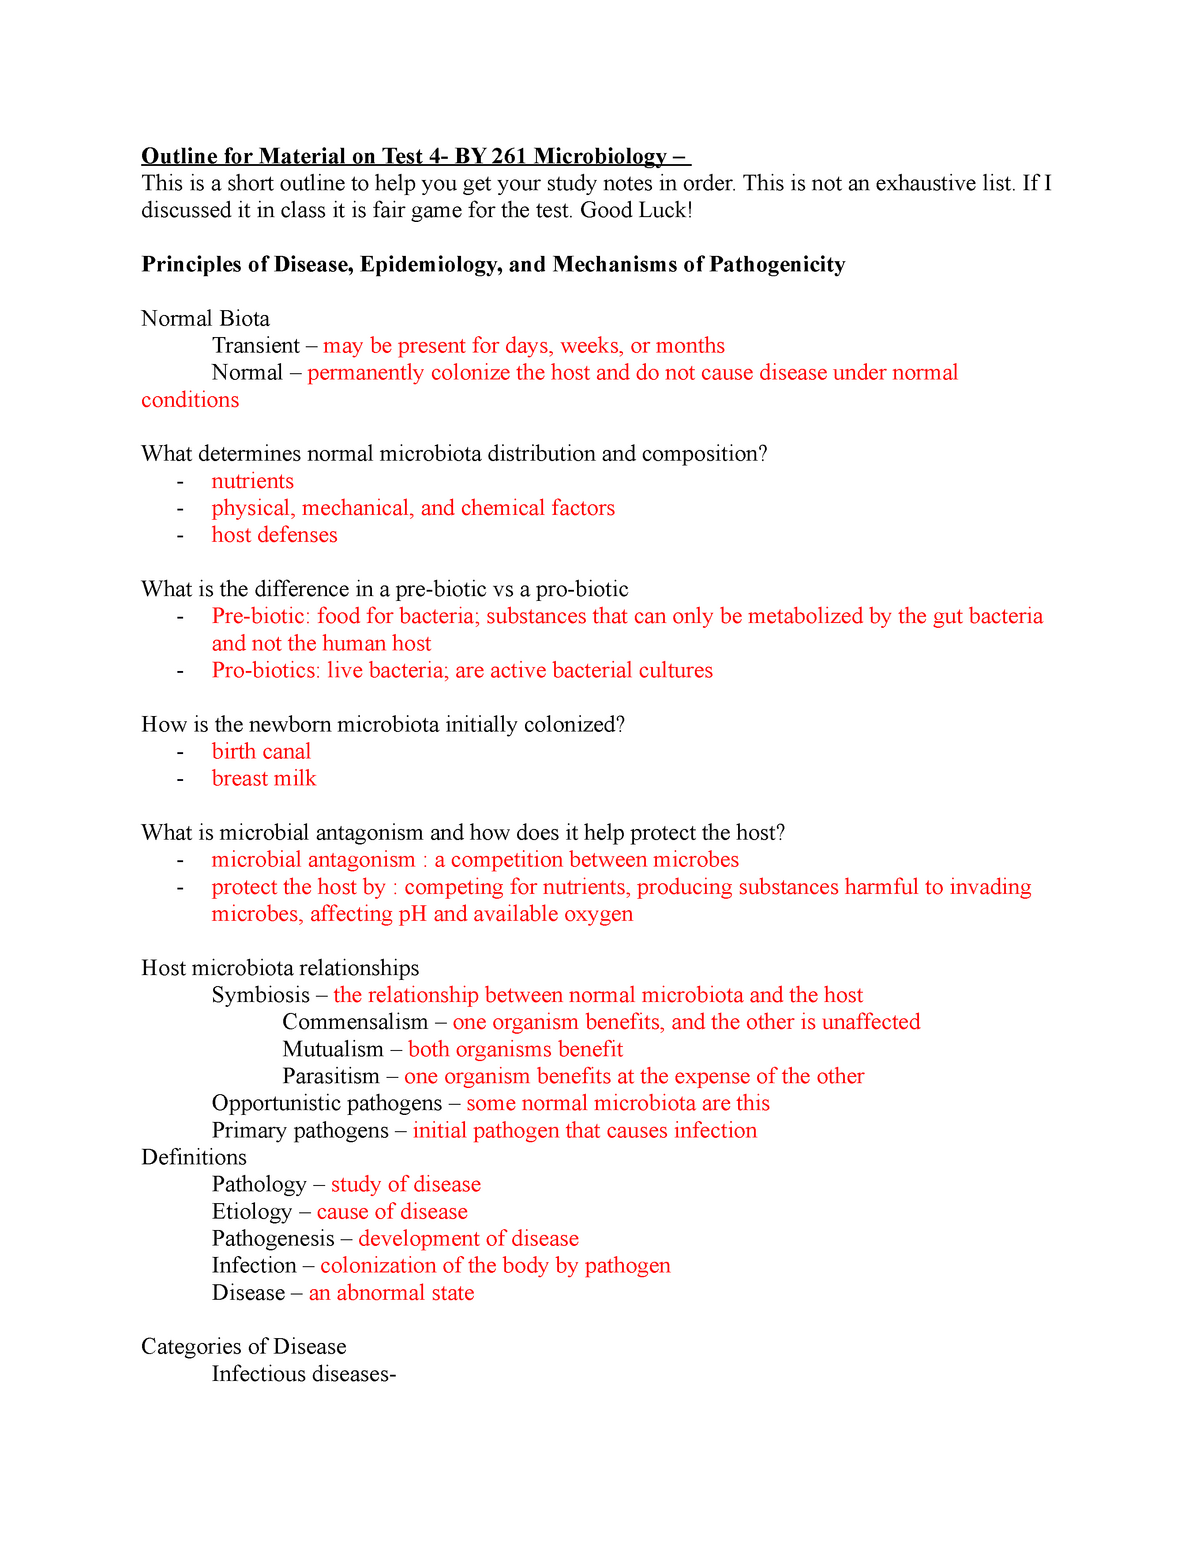 Micro Test 4 Study Guide - BY 261: Intro To Microbiology - StuDocu